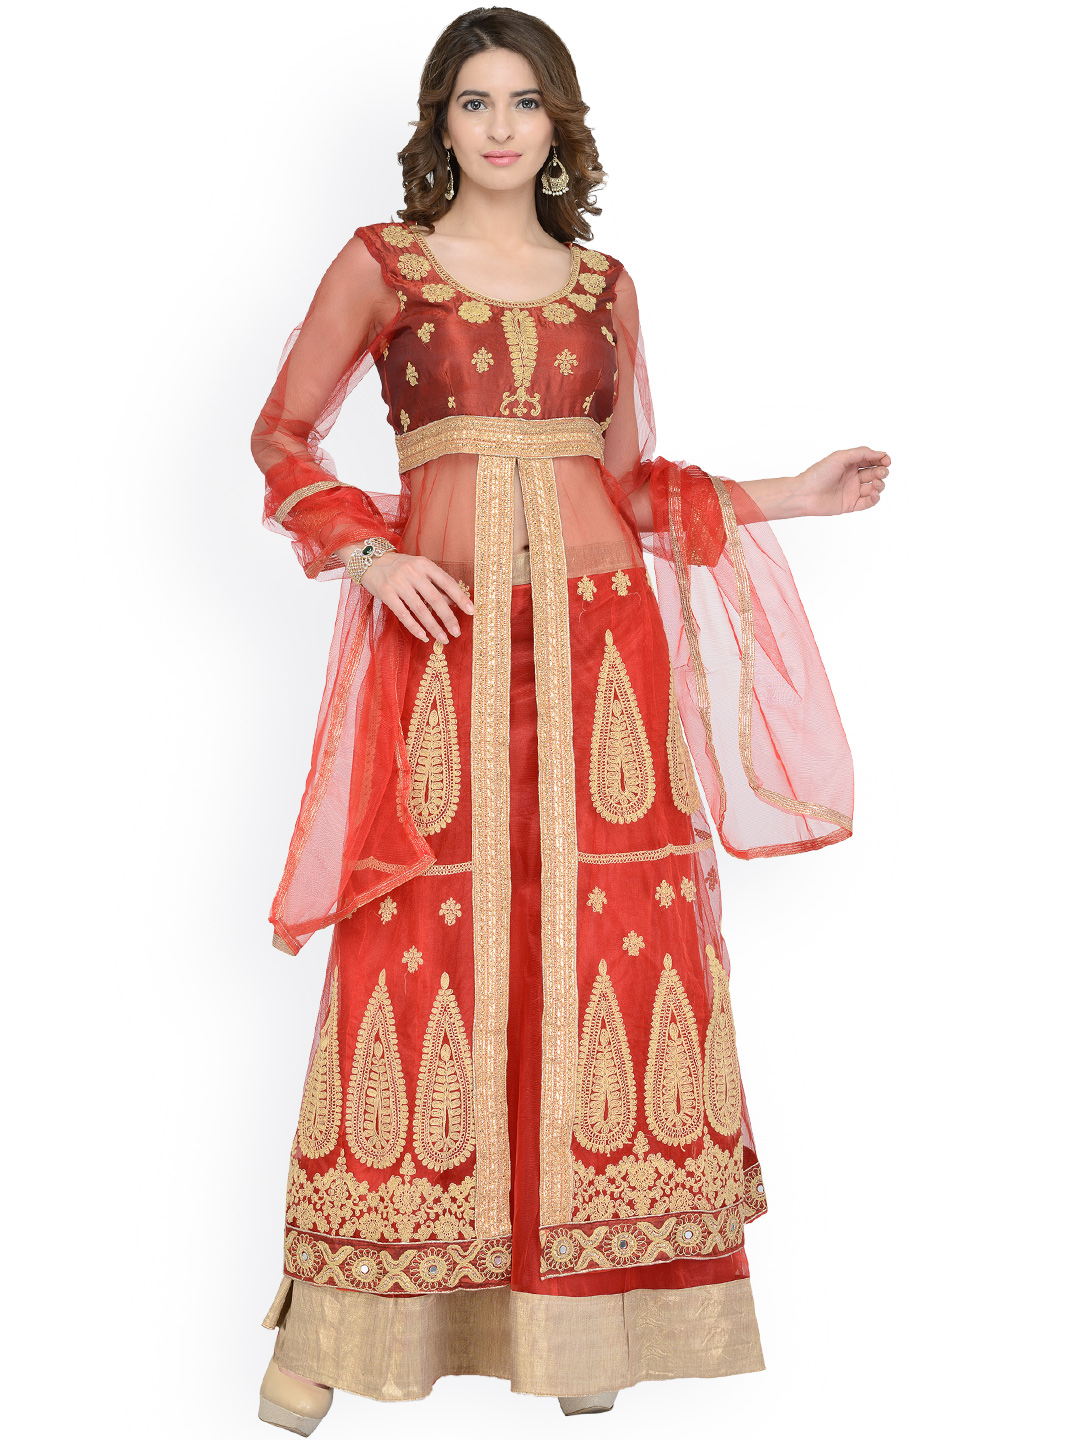 Chhabra 555 Red Embroidered Net Semi-Stitched Lehenga Choli with Dupatta & Jacket Price in India